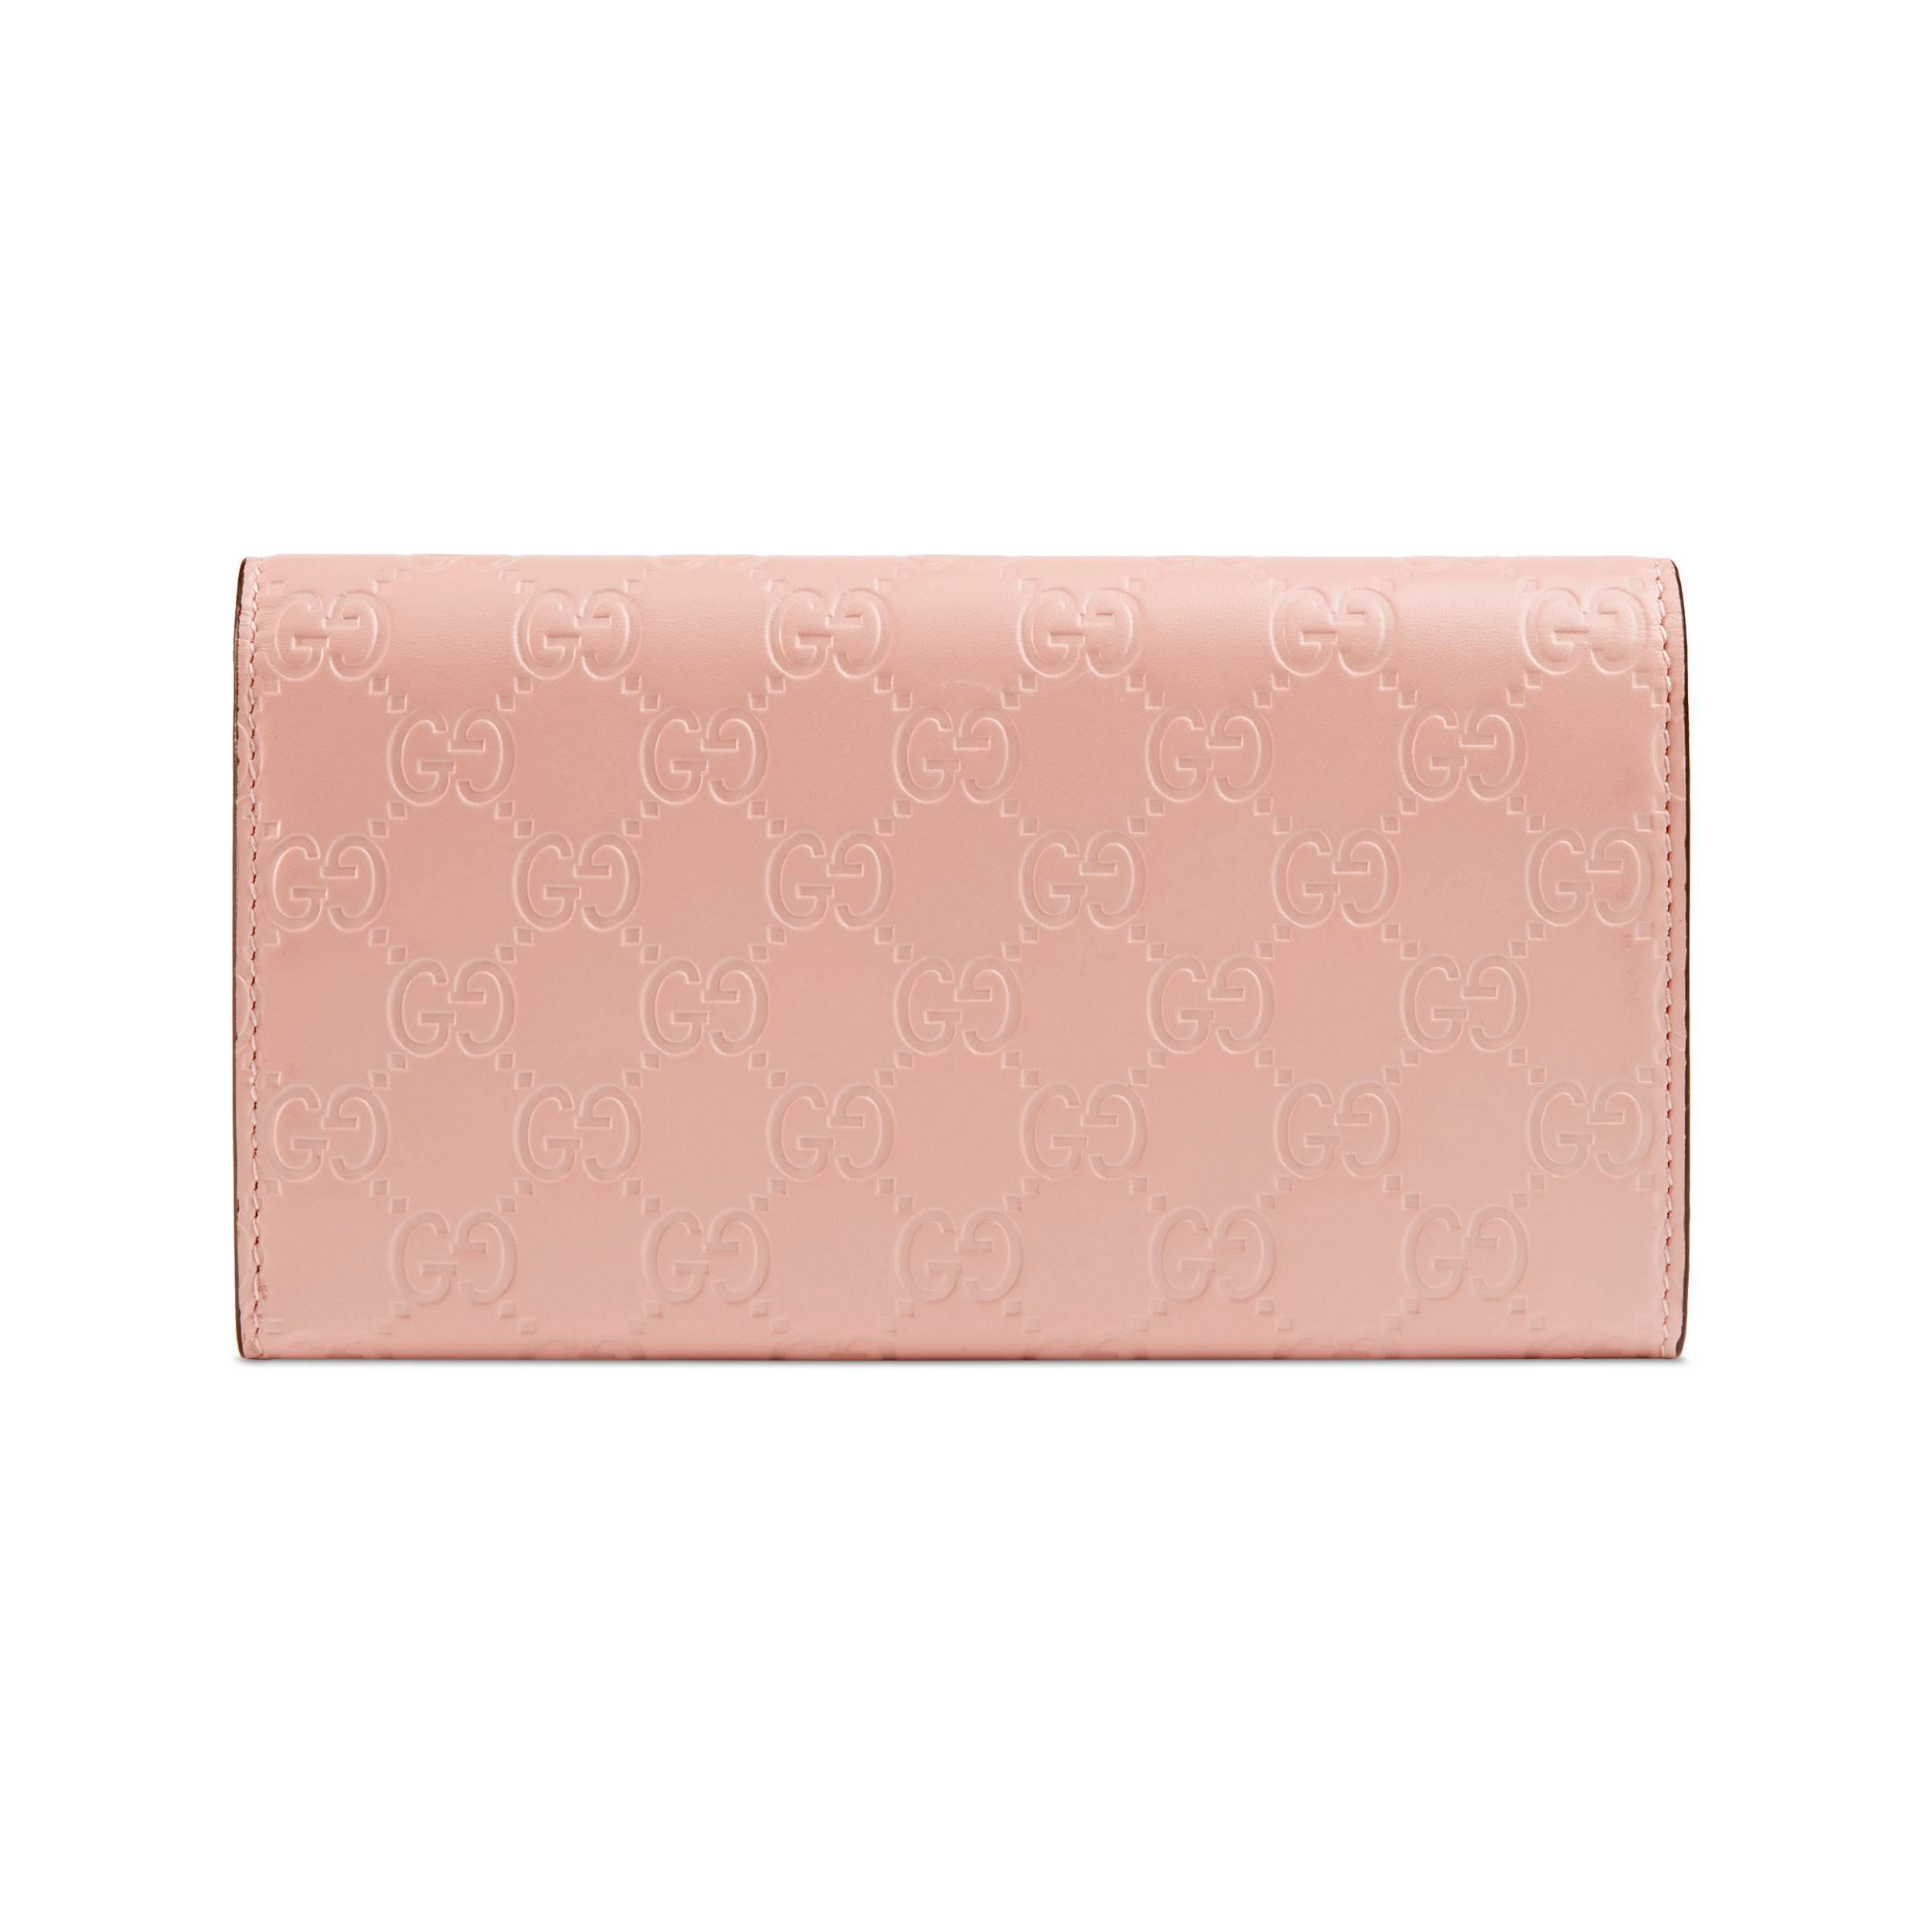 c8574fb7eae1 Gucci - Pink Signature Continental Wallet With Cat - Lyst. View fullscreen